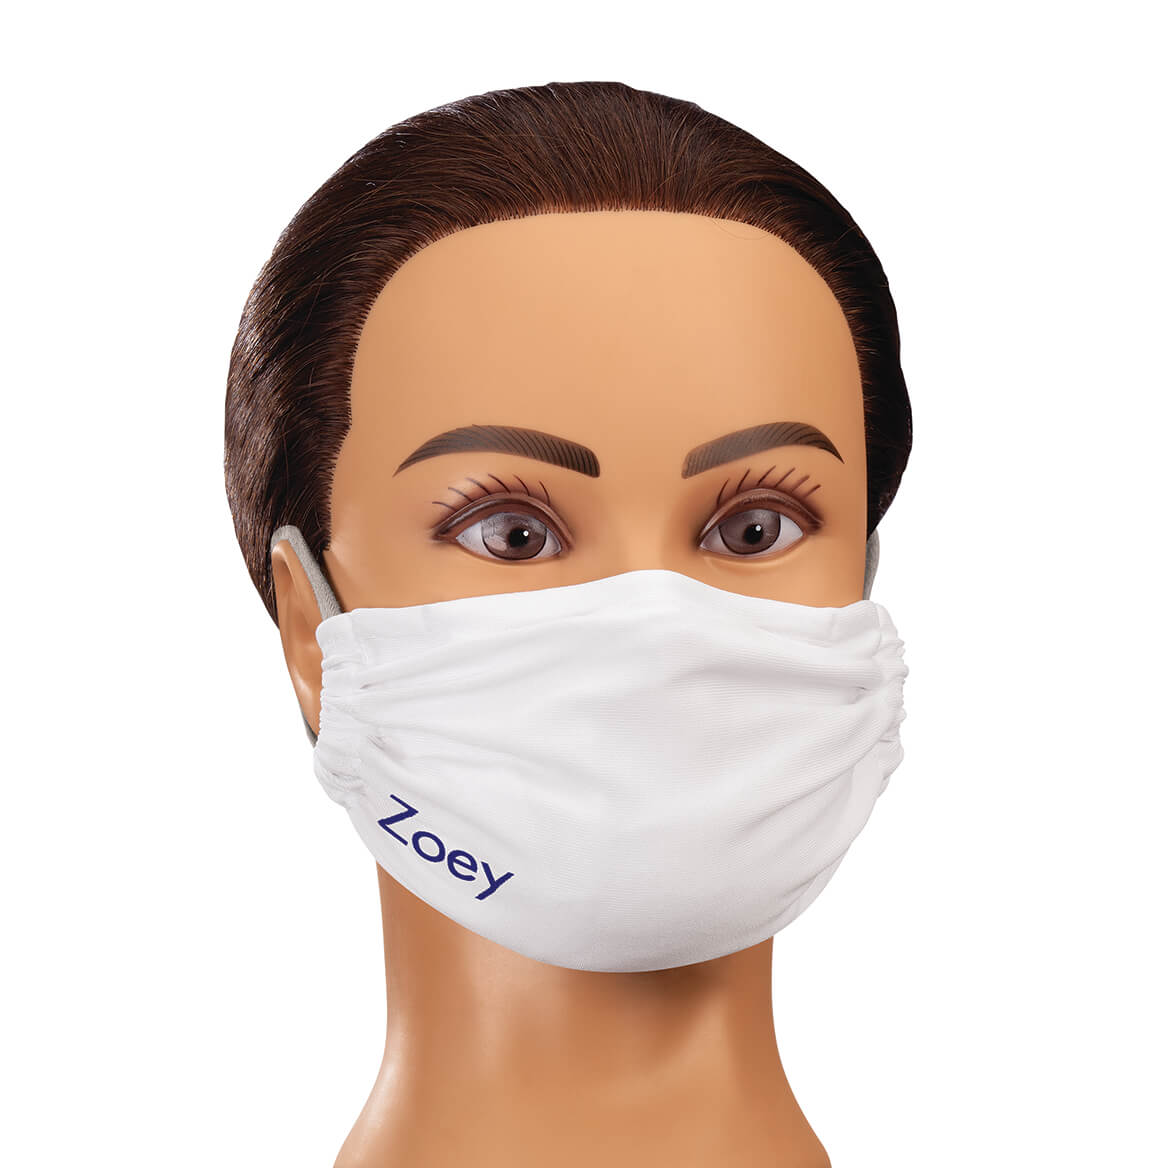 Personalized Face Masks-371768